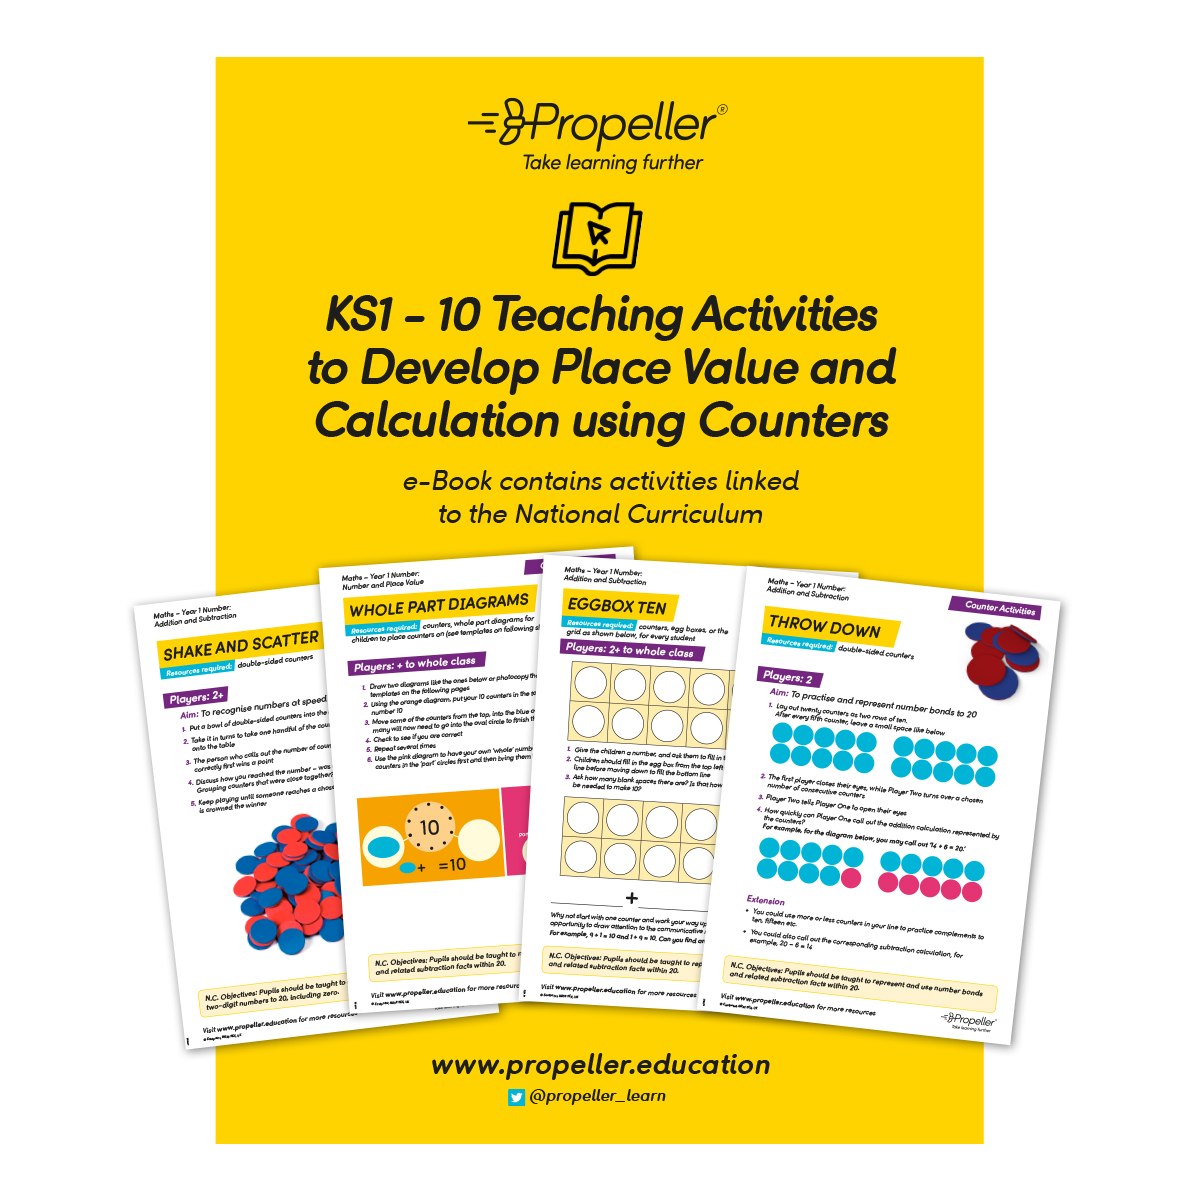 mt0132 ddtabook1 teaching activities using counters ks1